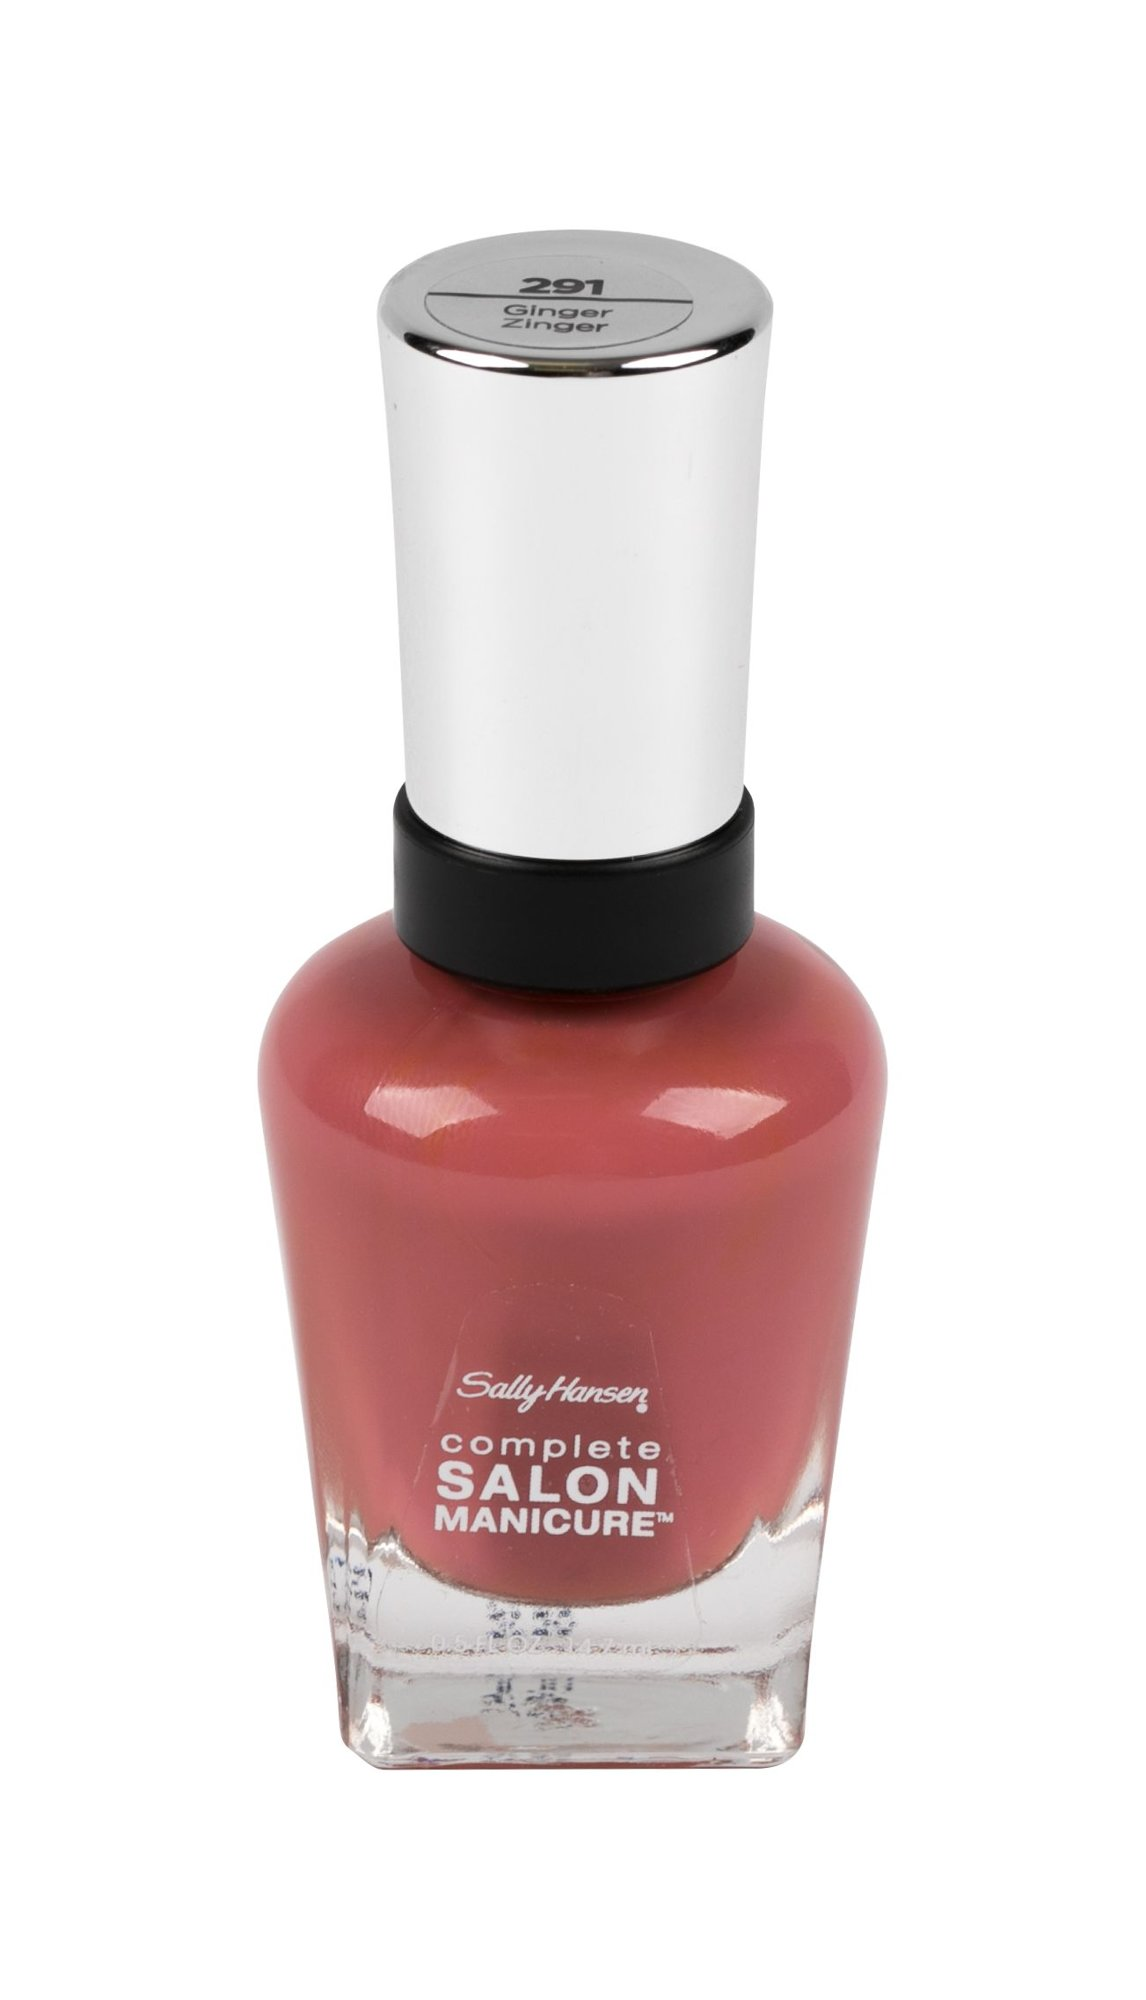 Sally Hansen Complete Salon Manicure Nail Polish 14,7ml 291 Ginger Zinger